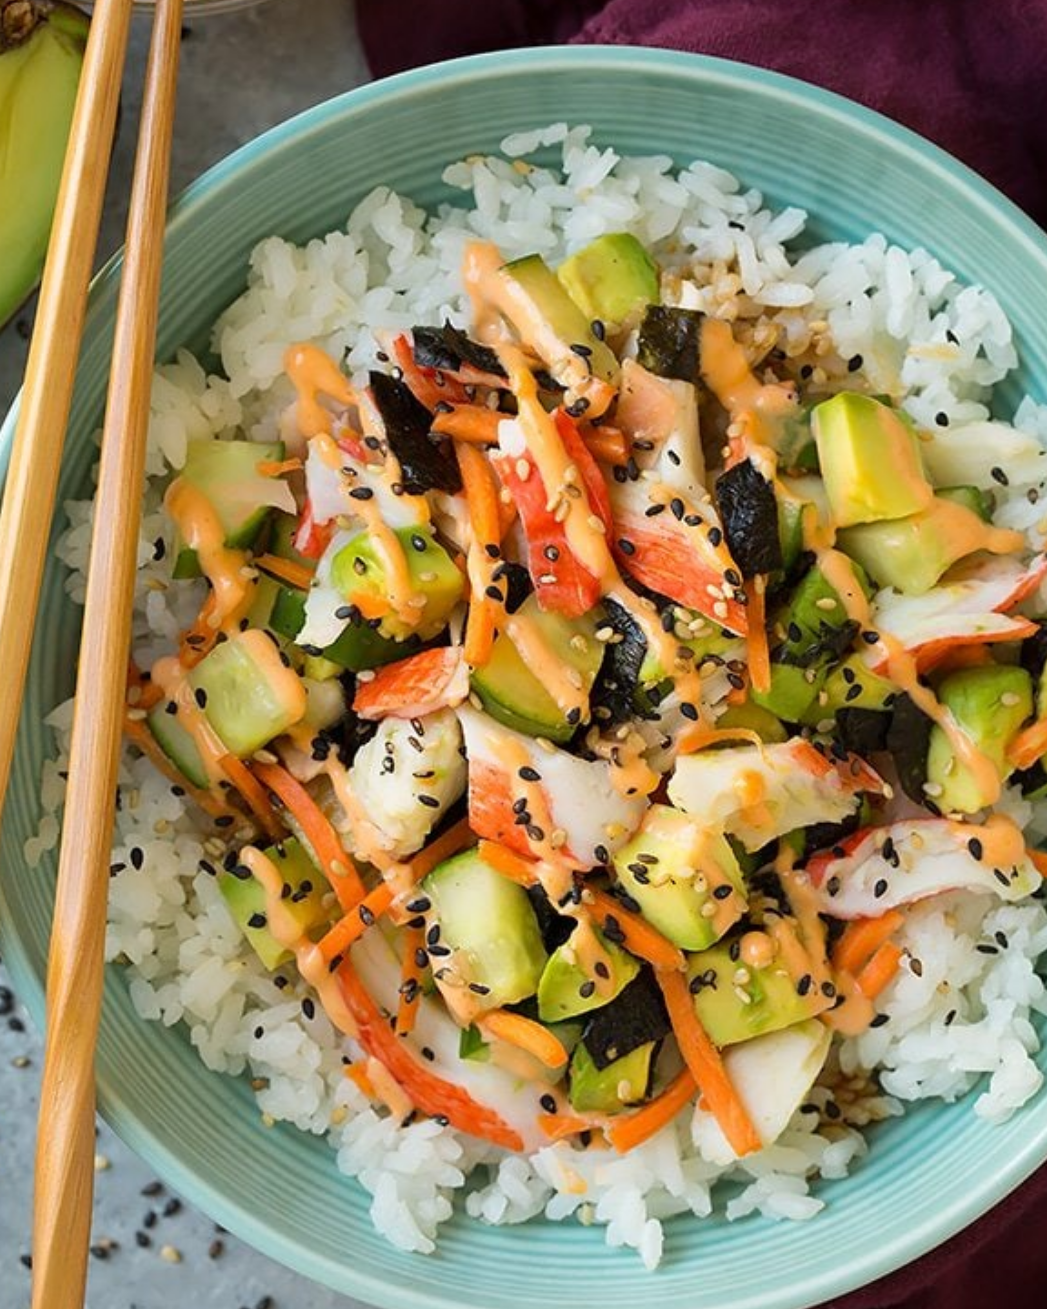 California Sushi Roll Bowls from cooking Classy: One of my family's favorite new recipes of the year